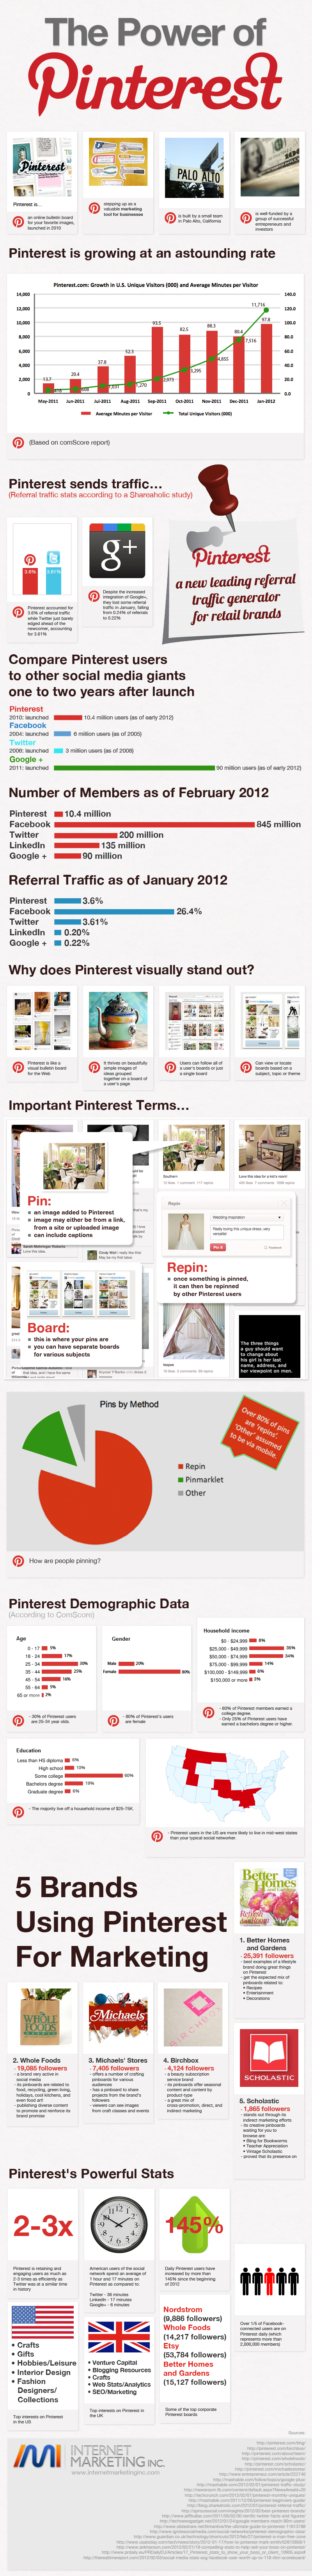 powerofpinterest Everything You Need to Know About Pinterest [9 Infographics]